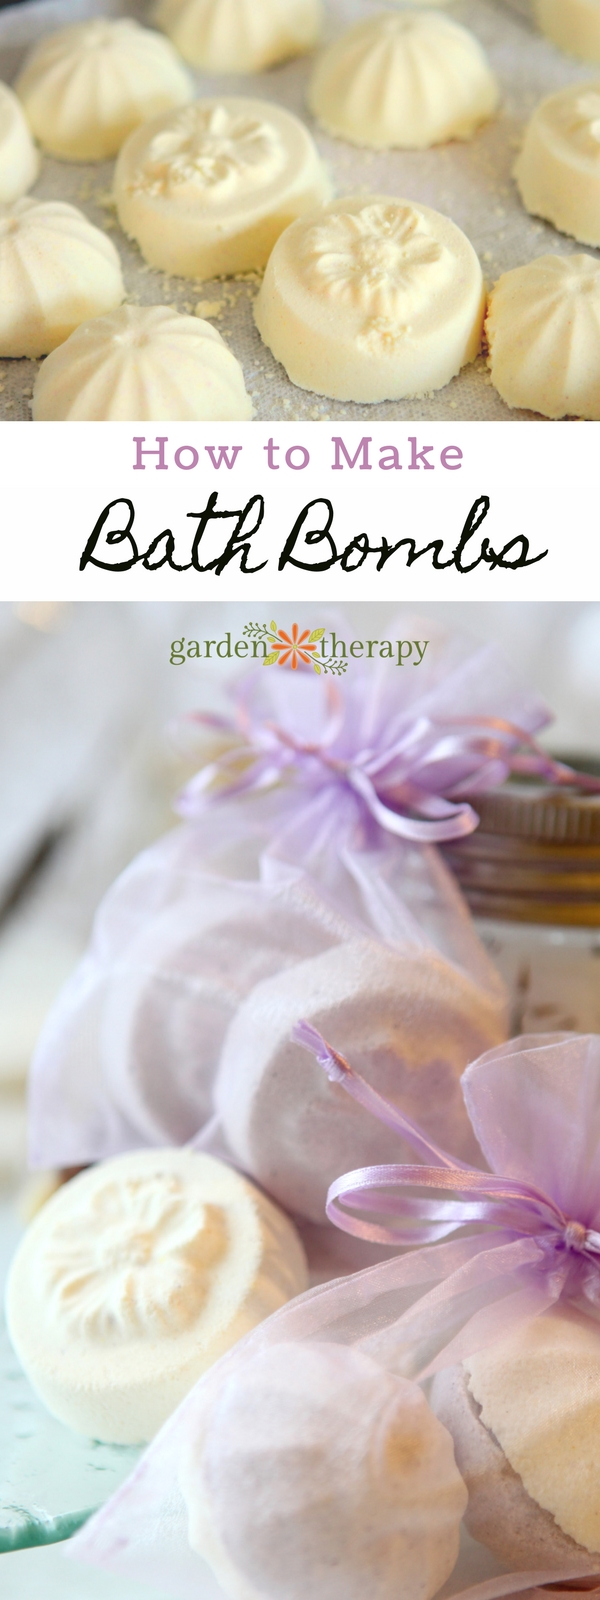 Love those awesome fizzing bath bombs but don't want to spend $6 a piece? It's easy to make your own with natural ingredients that soften your skin for a fraction of the price. #gardentherapy #bathbomb #plantbasedbeauty #naturalbeauty